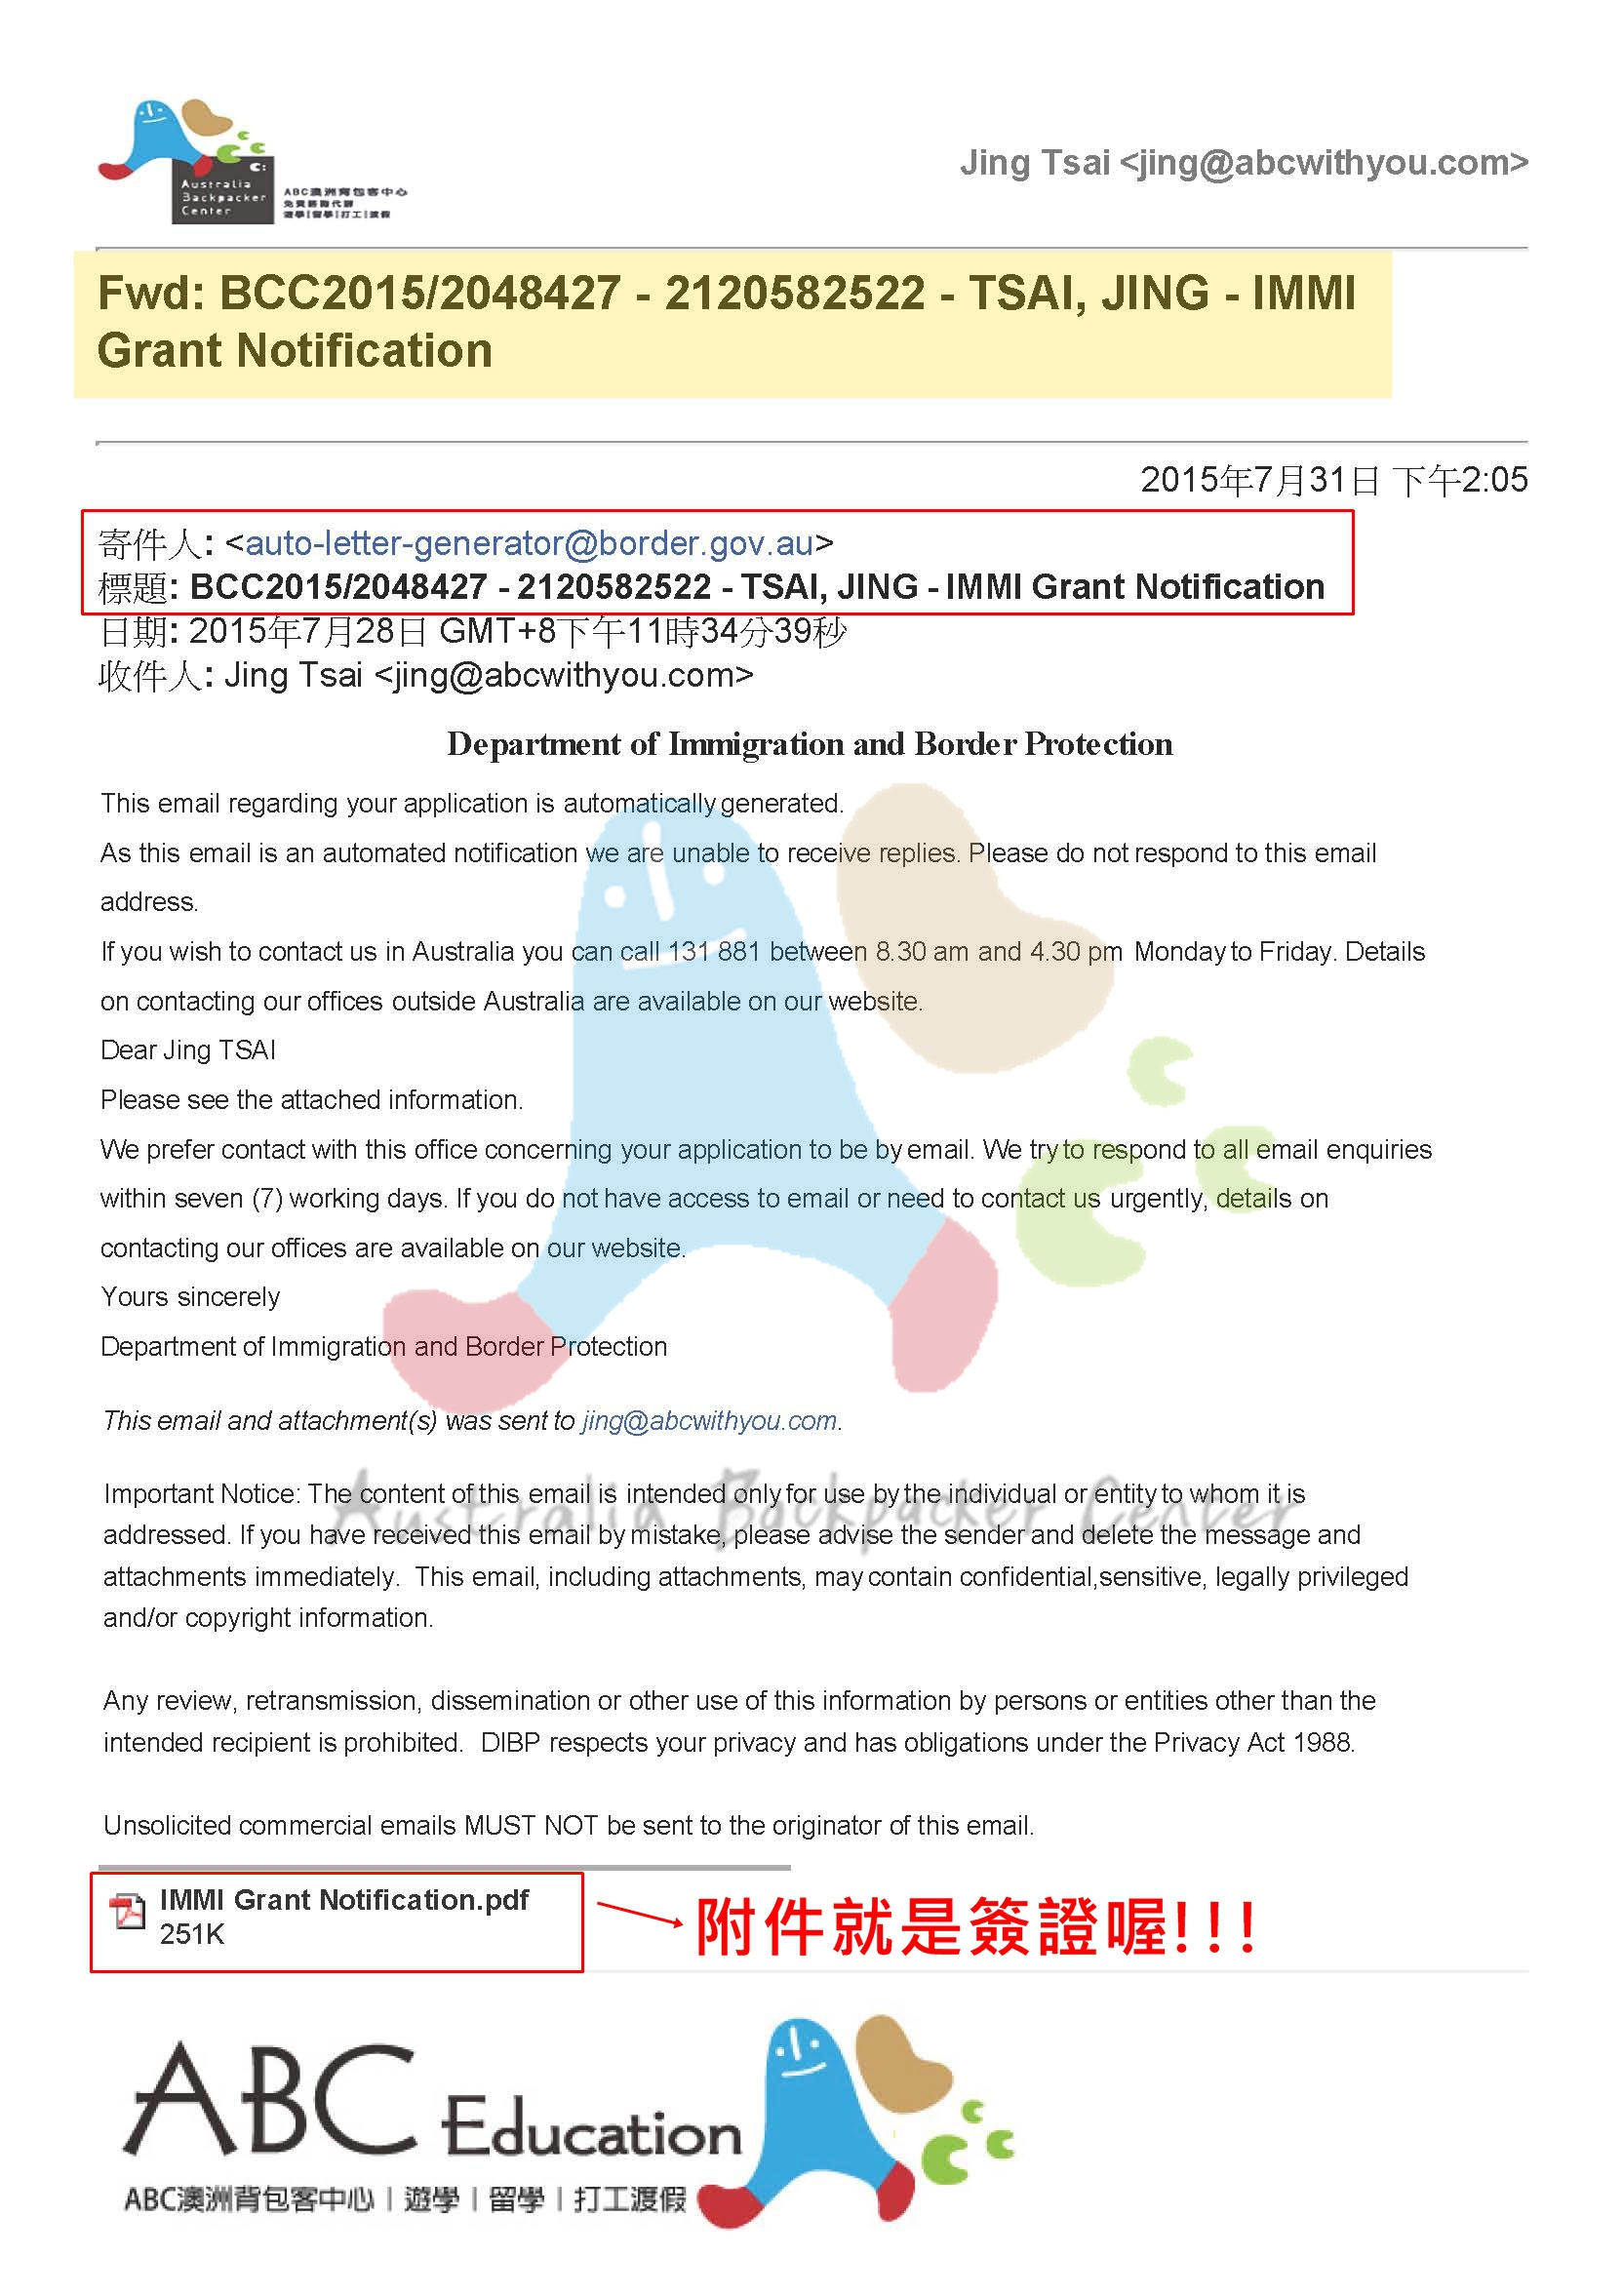 IMMI Grant Notification-EMAIL